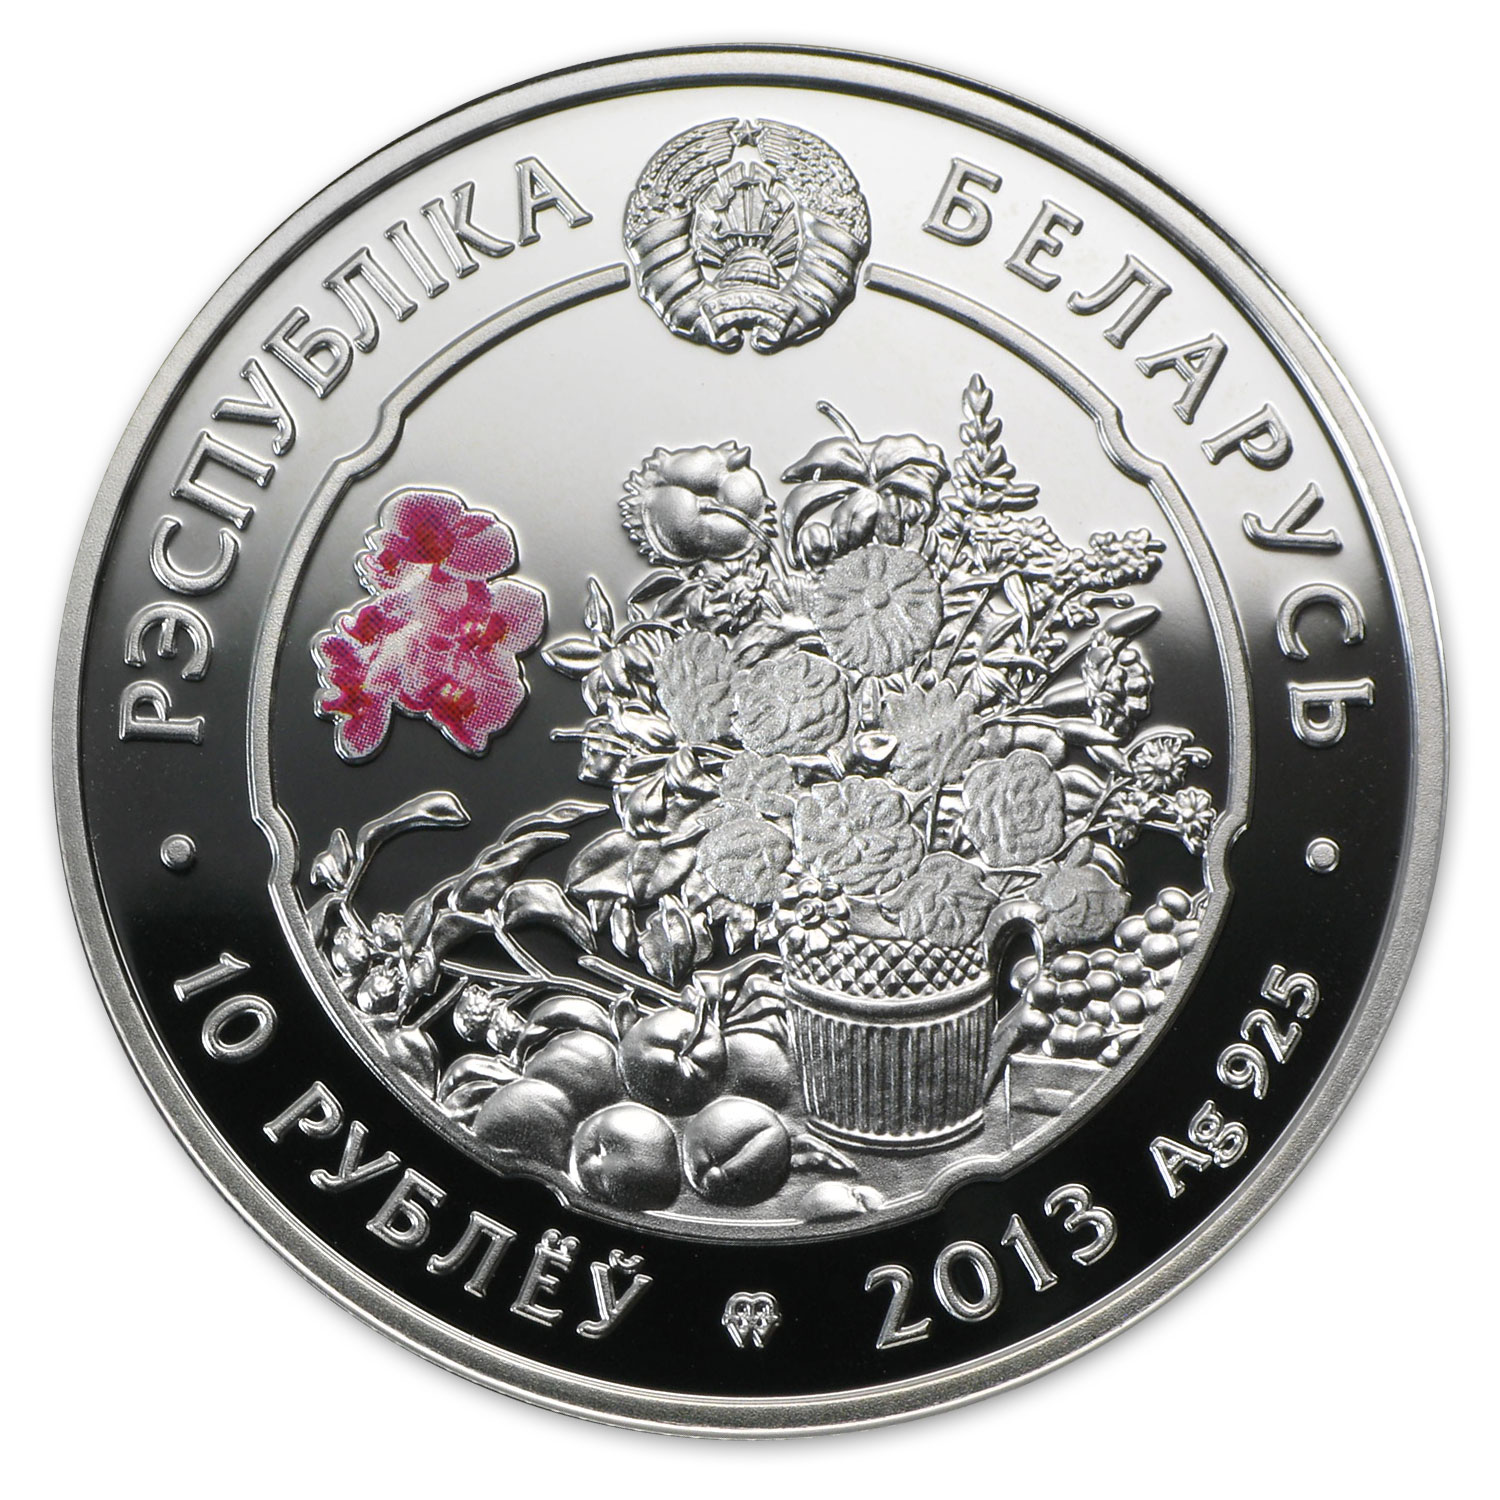 Belarus 2013 Silver Proof Under the Charm of Flowers - Rose